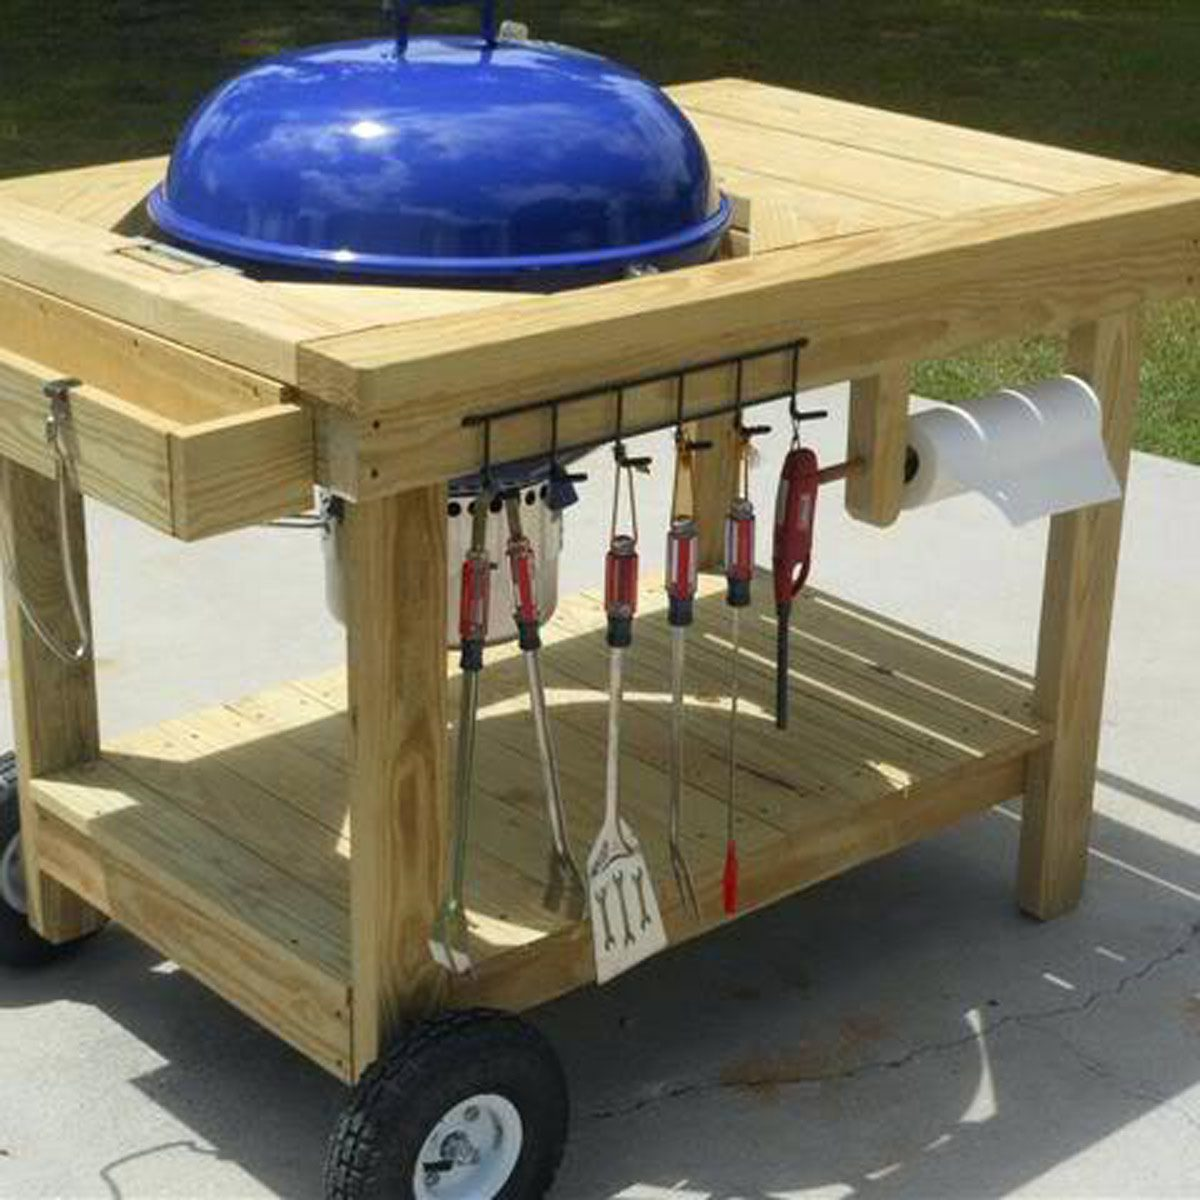 13 Brilliant Ways To Store Grill Tools The Family Handyman